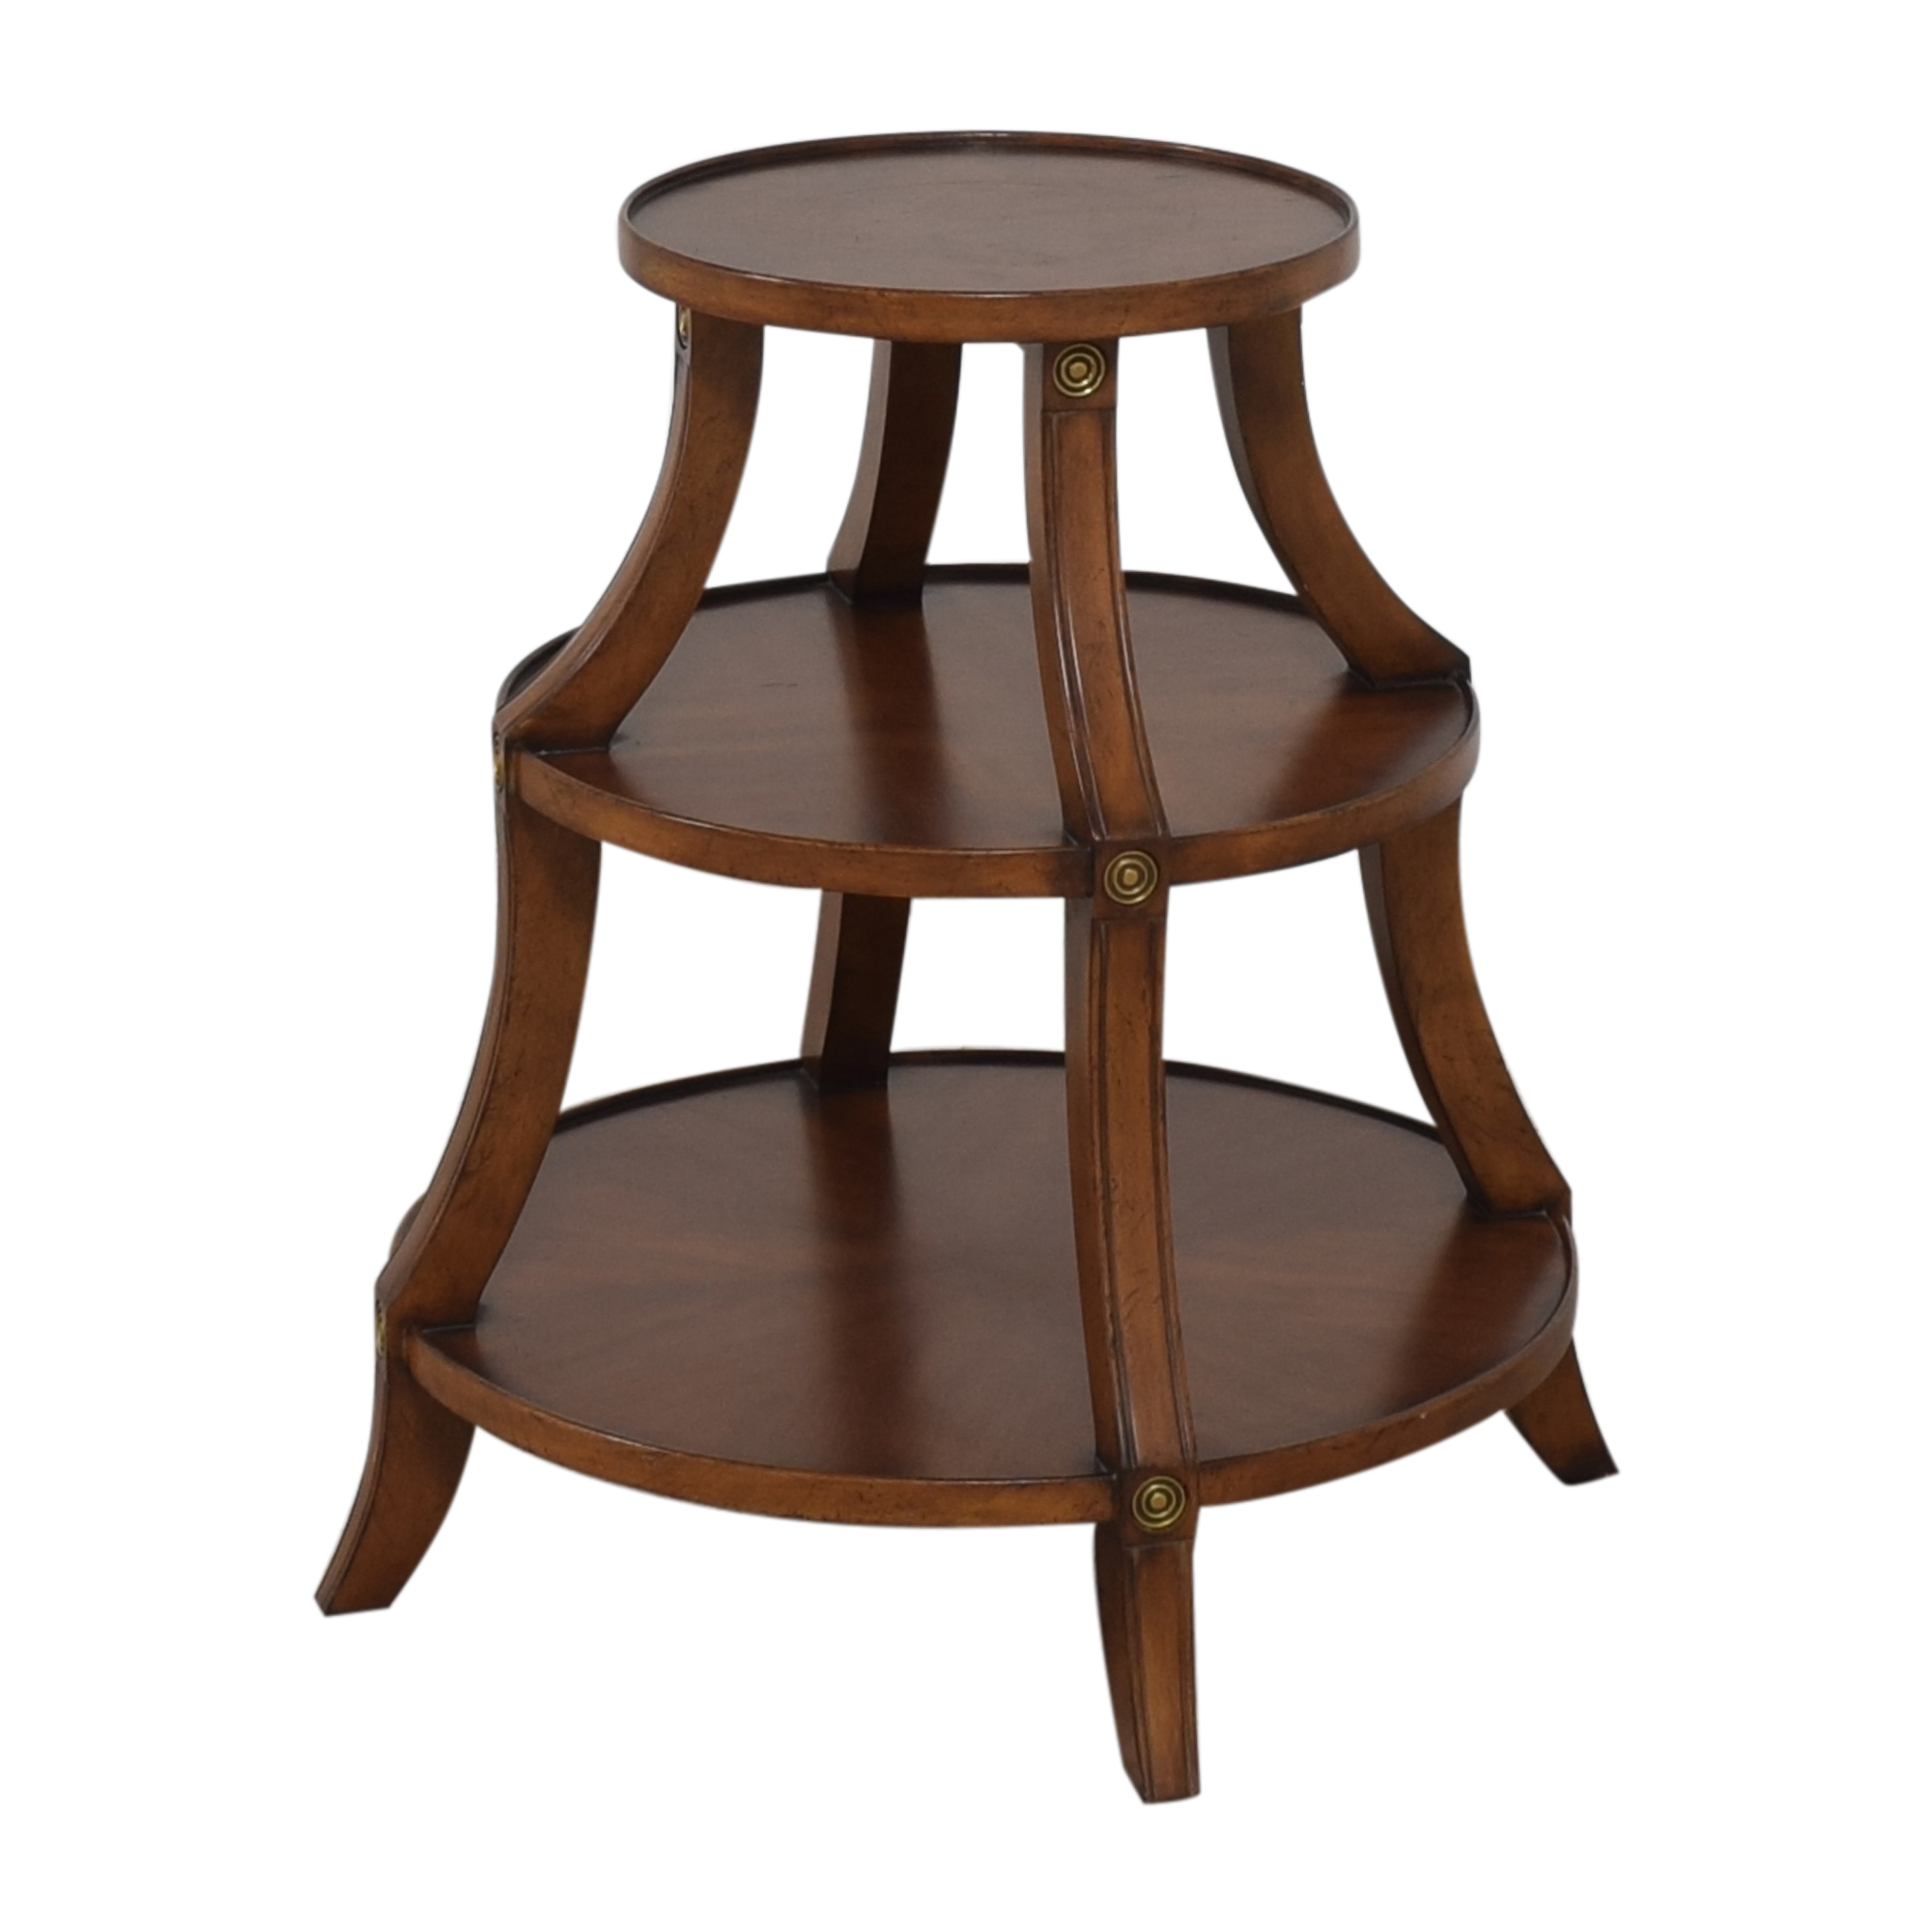 Ethan Allen Ethan Allen Tiered Accent Table ma